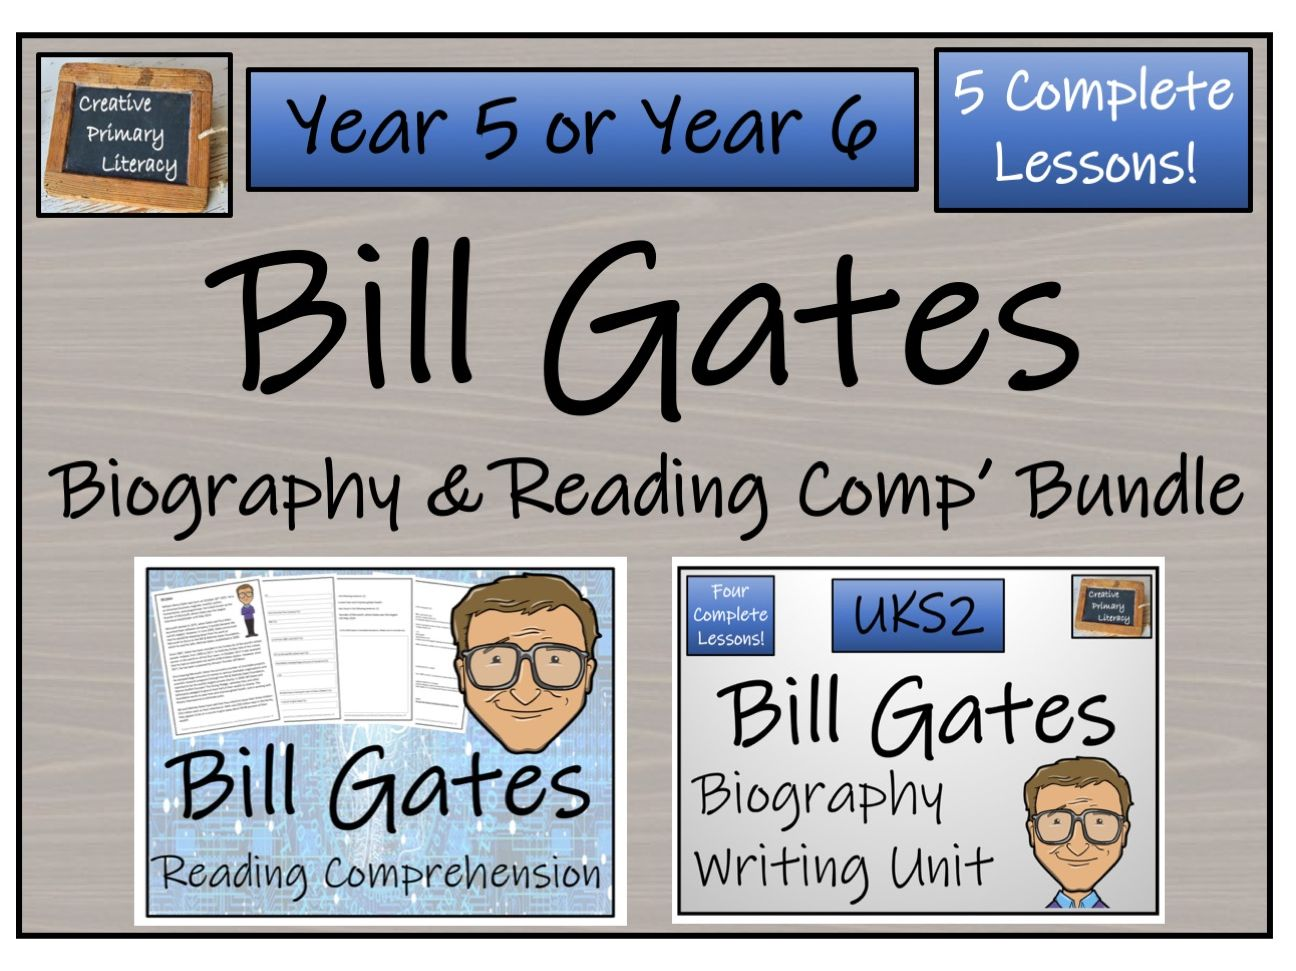 UKS2 Literacy - Bill Gates Reading Comprehension & Biography Bundle